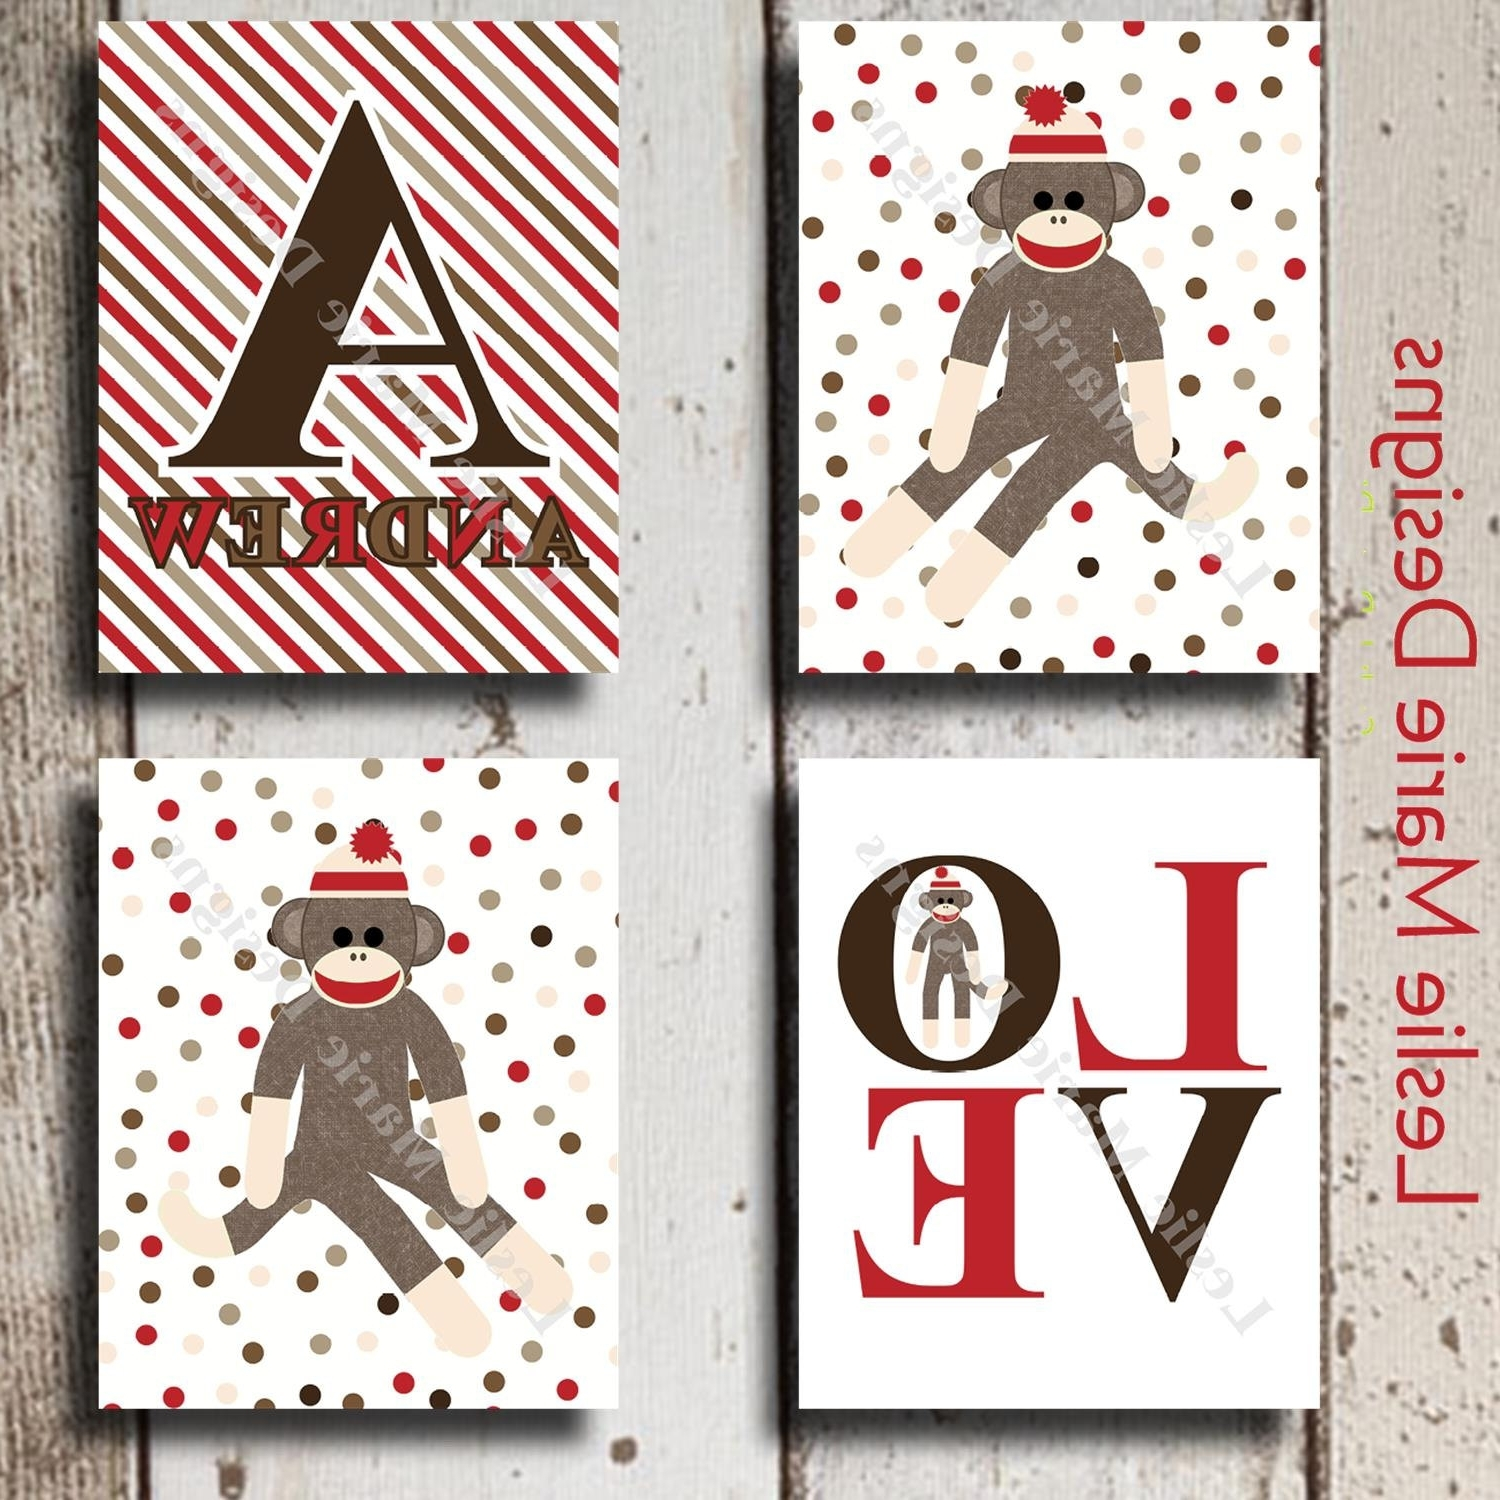 Popular Sock Monkey Nursery Sock Monkey Sock Monkey Wall Art With Sock Monkey Wall Art (View 6 of 15)